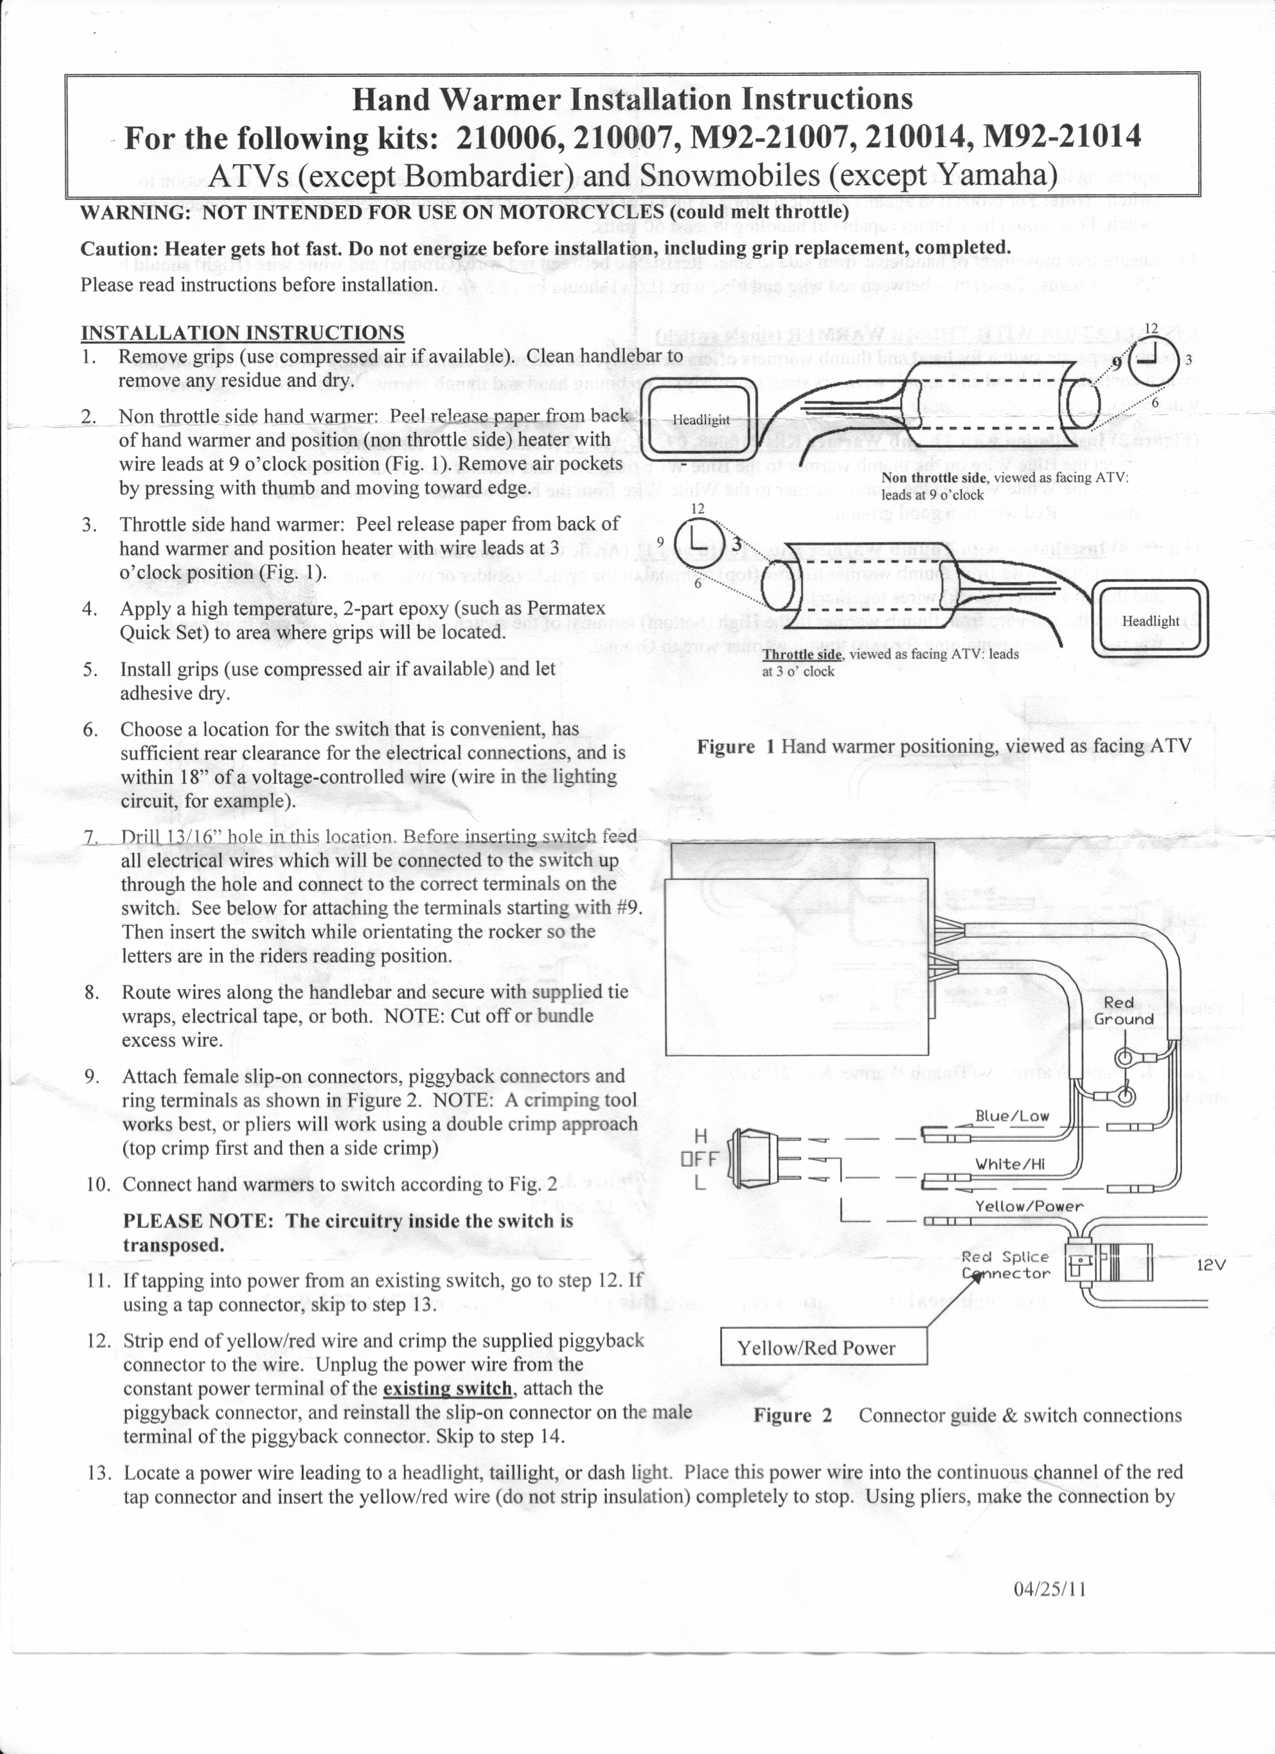 286833d1382138612 electrical experts hacks question about installing heated grips heated grips instuctions for electrical experts or hacks,question about installing heated kimpex wiring diagram at soozxer.org